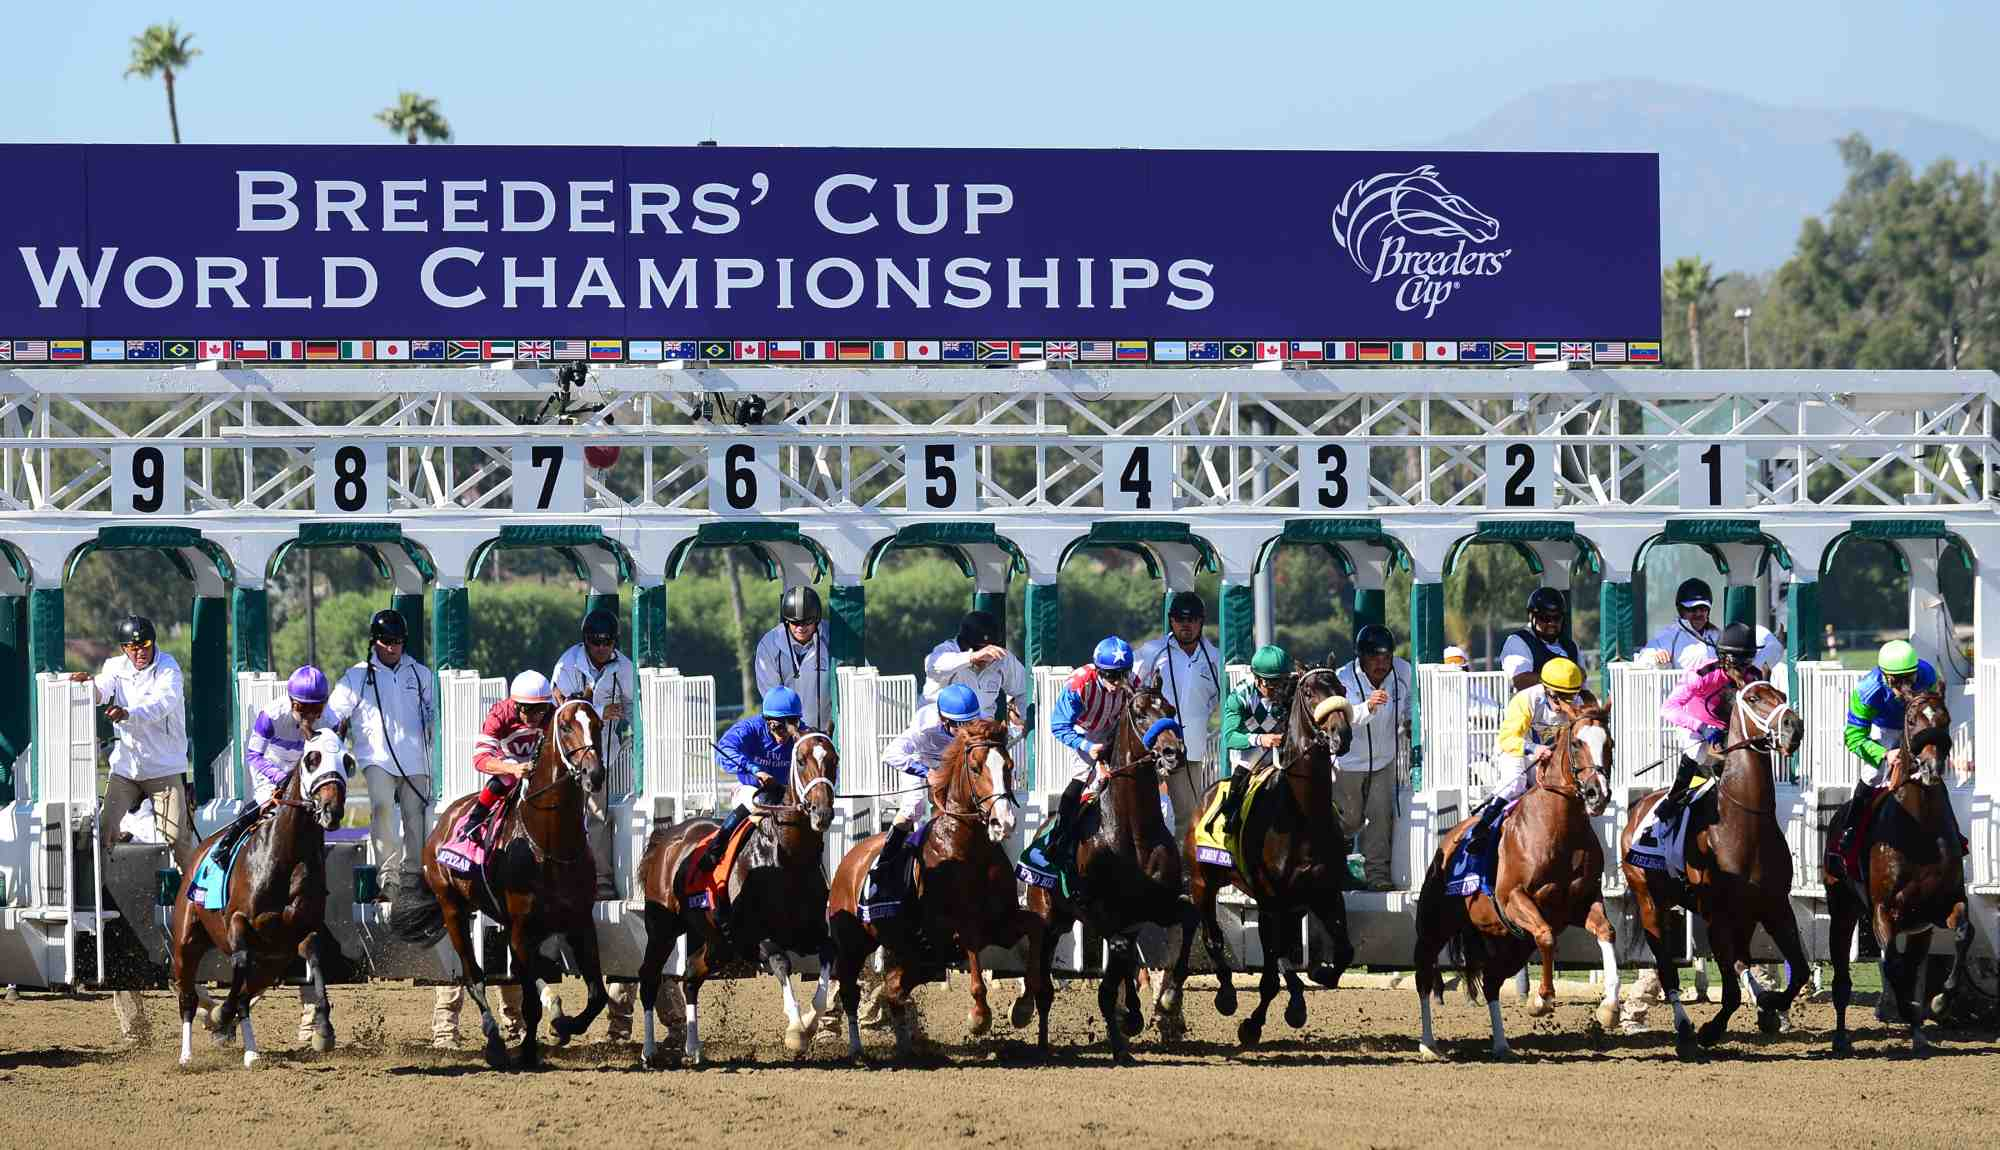 FanDuel Announces Sponsorship Deal With Breeders' Cup